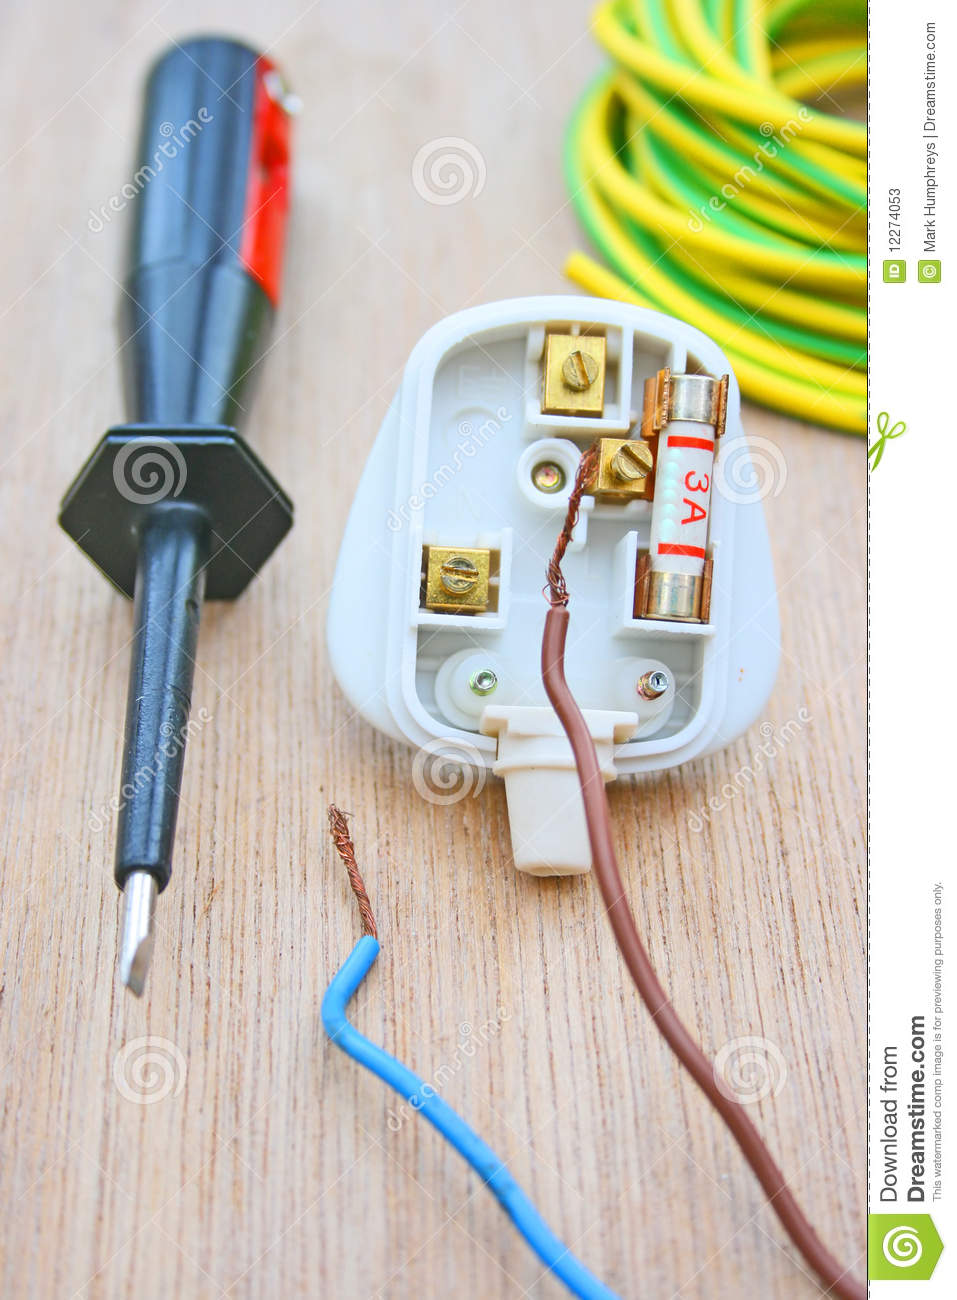 medium resolution of household electrical plug fitted with a three amp fuse and with live and neutral wires disconnected also an electricians screwdriver with earth wire sleeve